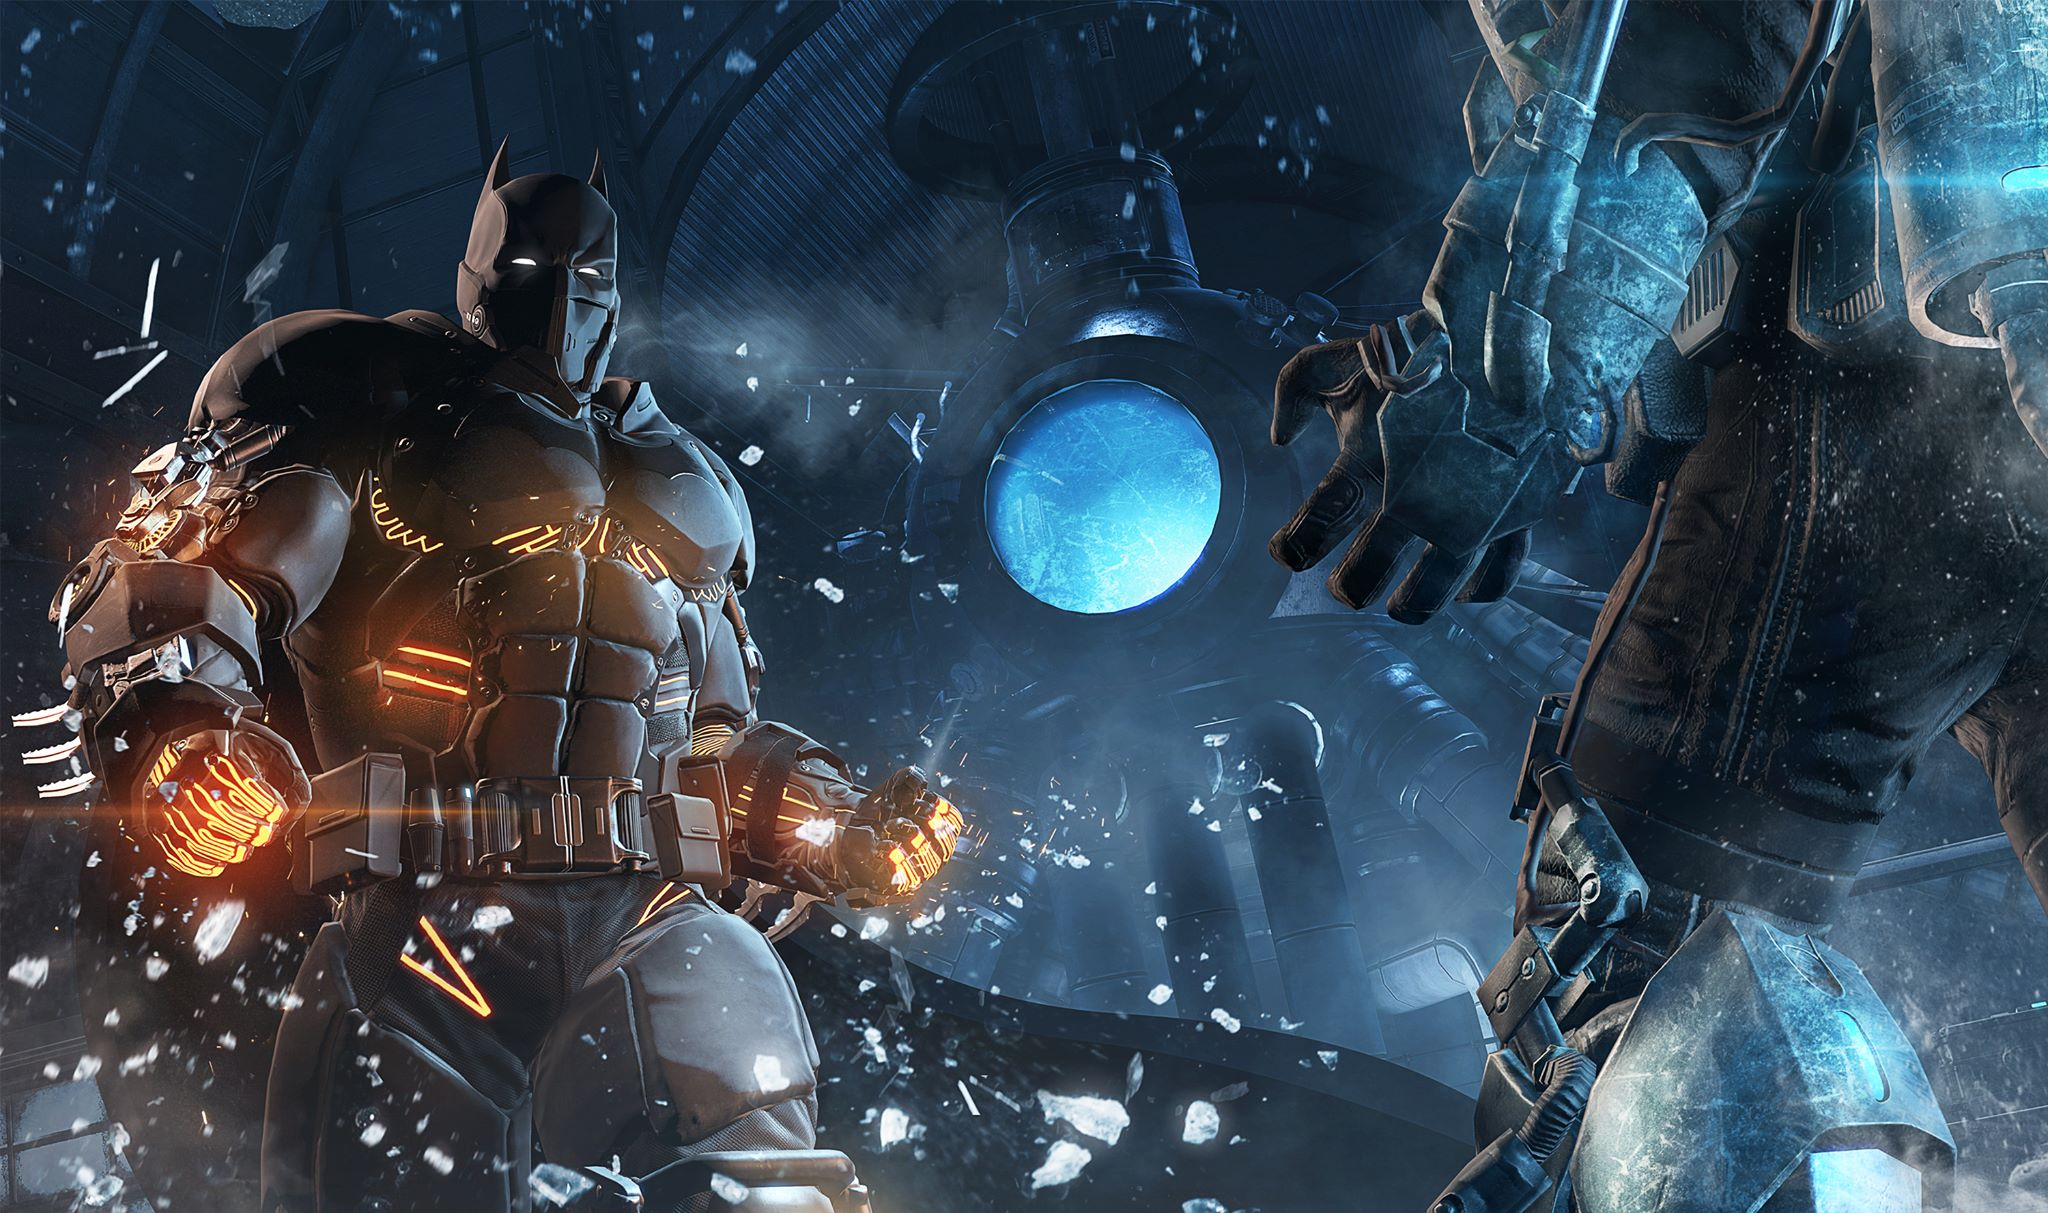 Batman Arkham Origins Cold Heart DLC The Extreme Environment XE Suit Comes Equipped With New Gadgets Including Thermal Gloves And